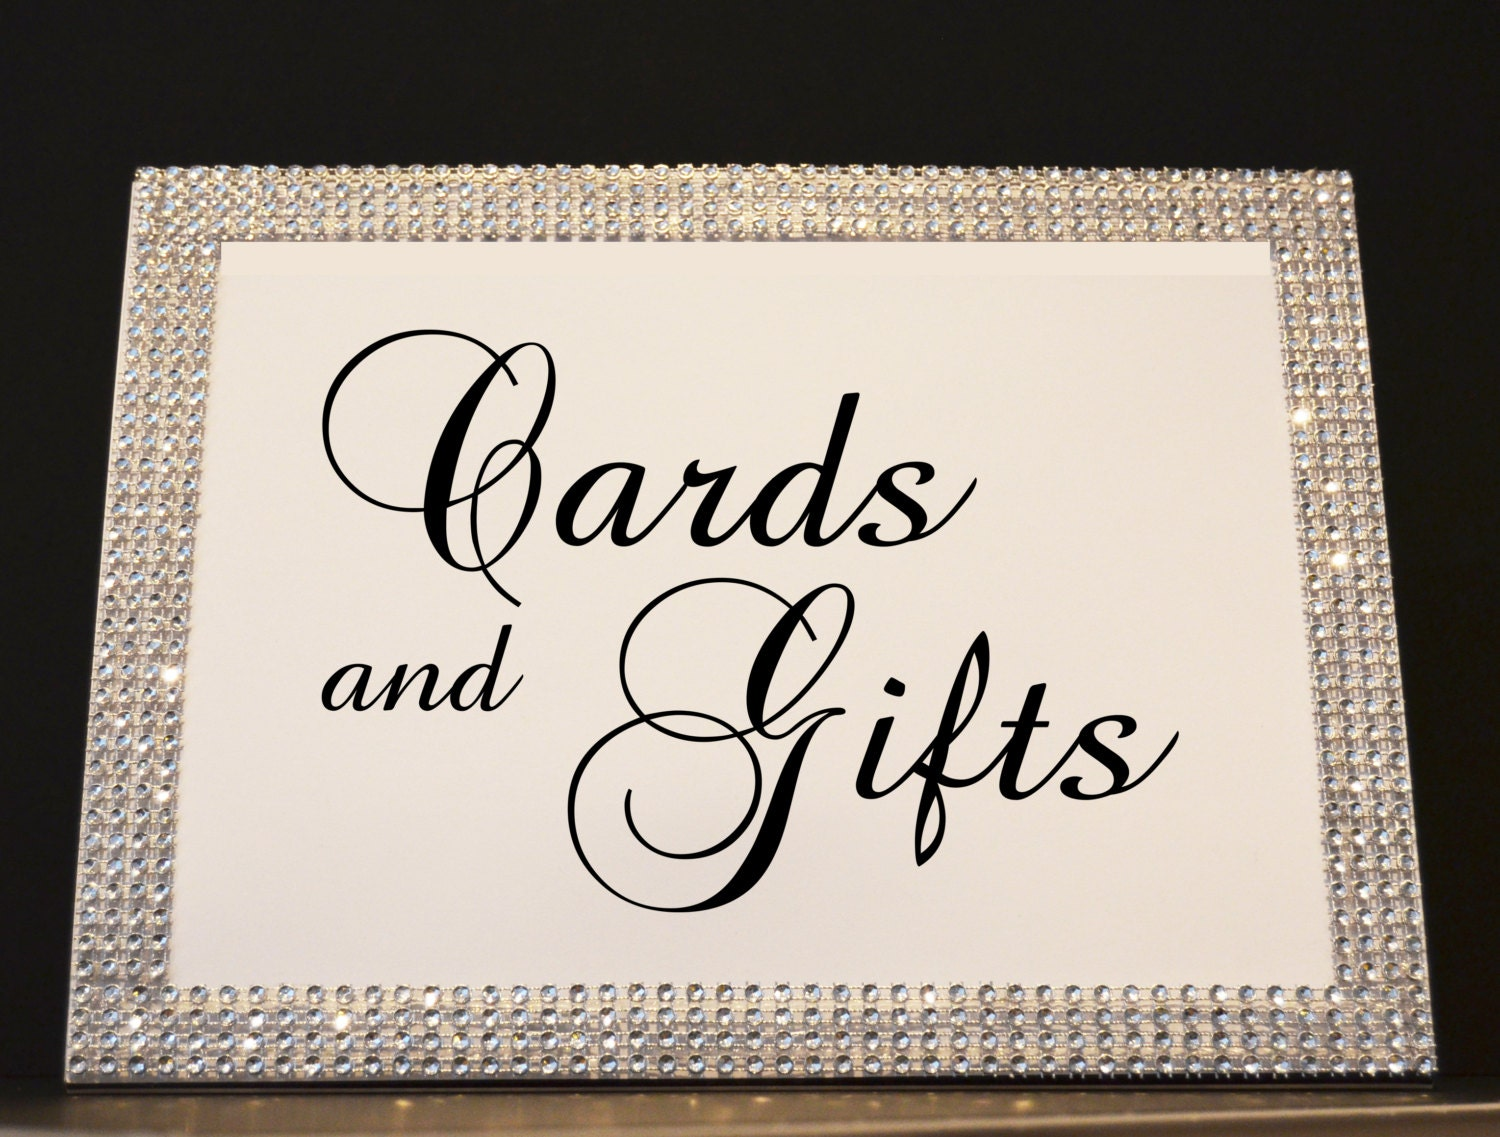 rhinestone wedding sign 8x10 frame with cards and gifts sign